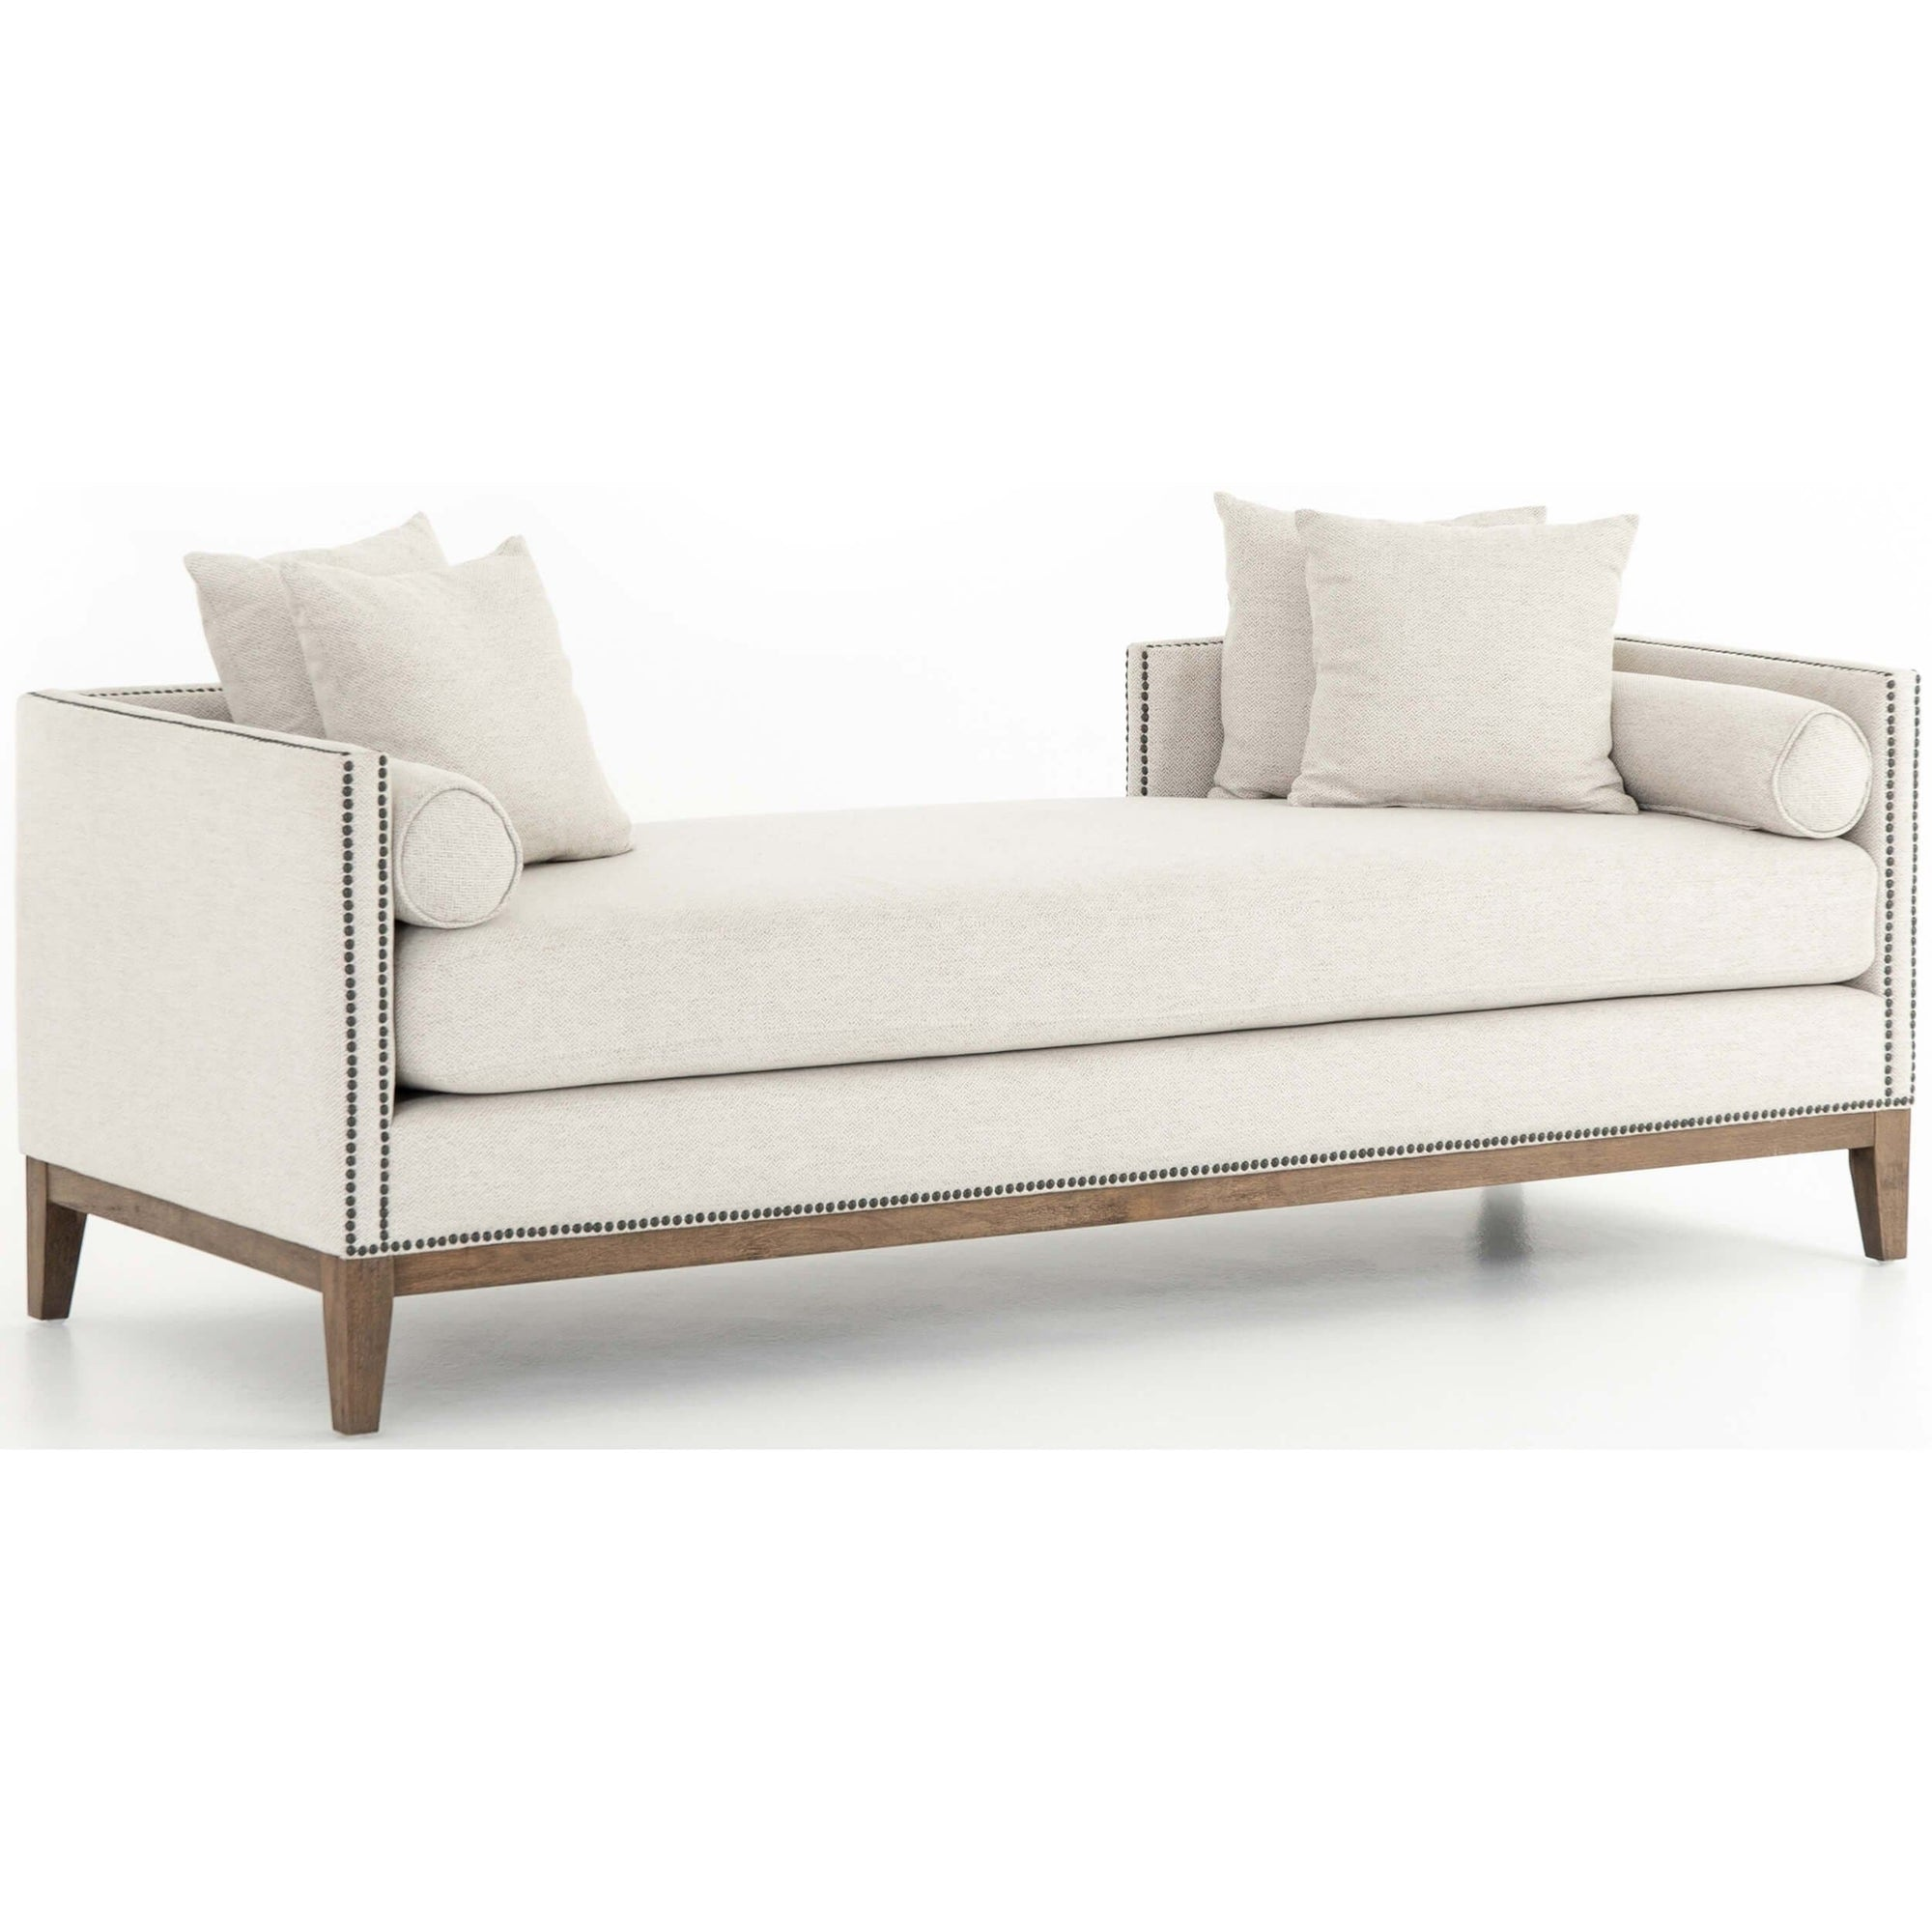 Remarkable Mercury Double Chaise Noble Platinum High Fashion Home Evergreenethics Interior Chair Design Evergreenethicsorg